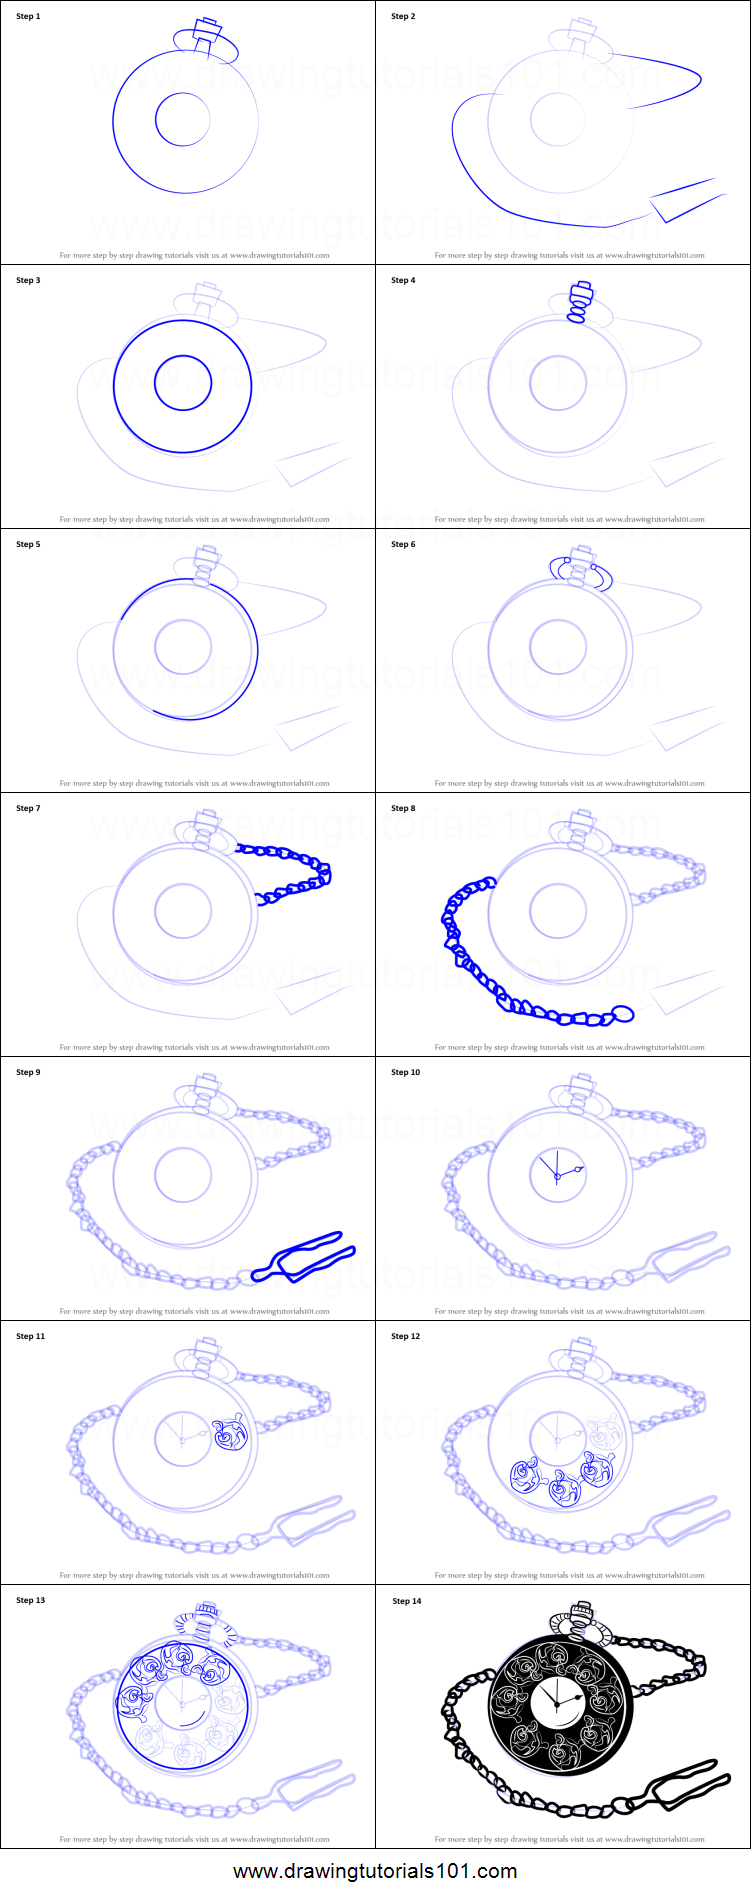 How to Draw a Pocket Watch printable step by step drawing ...